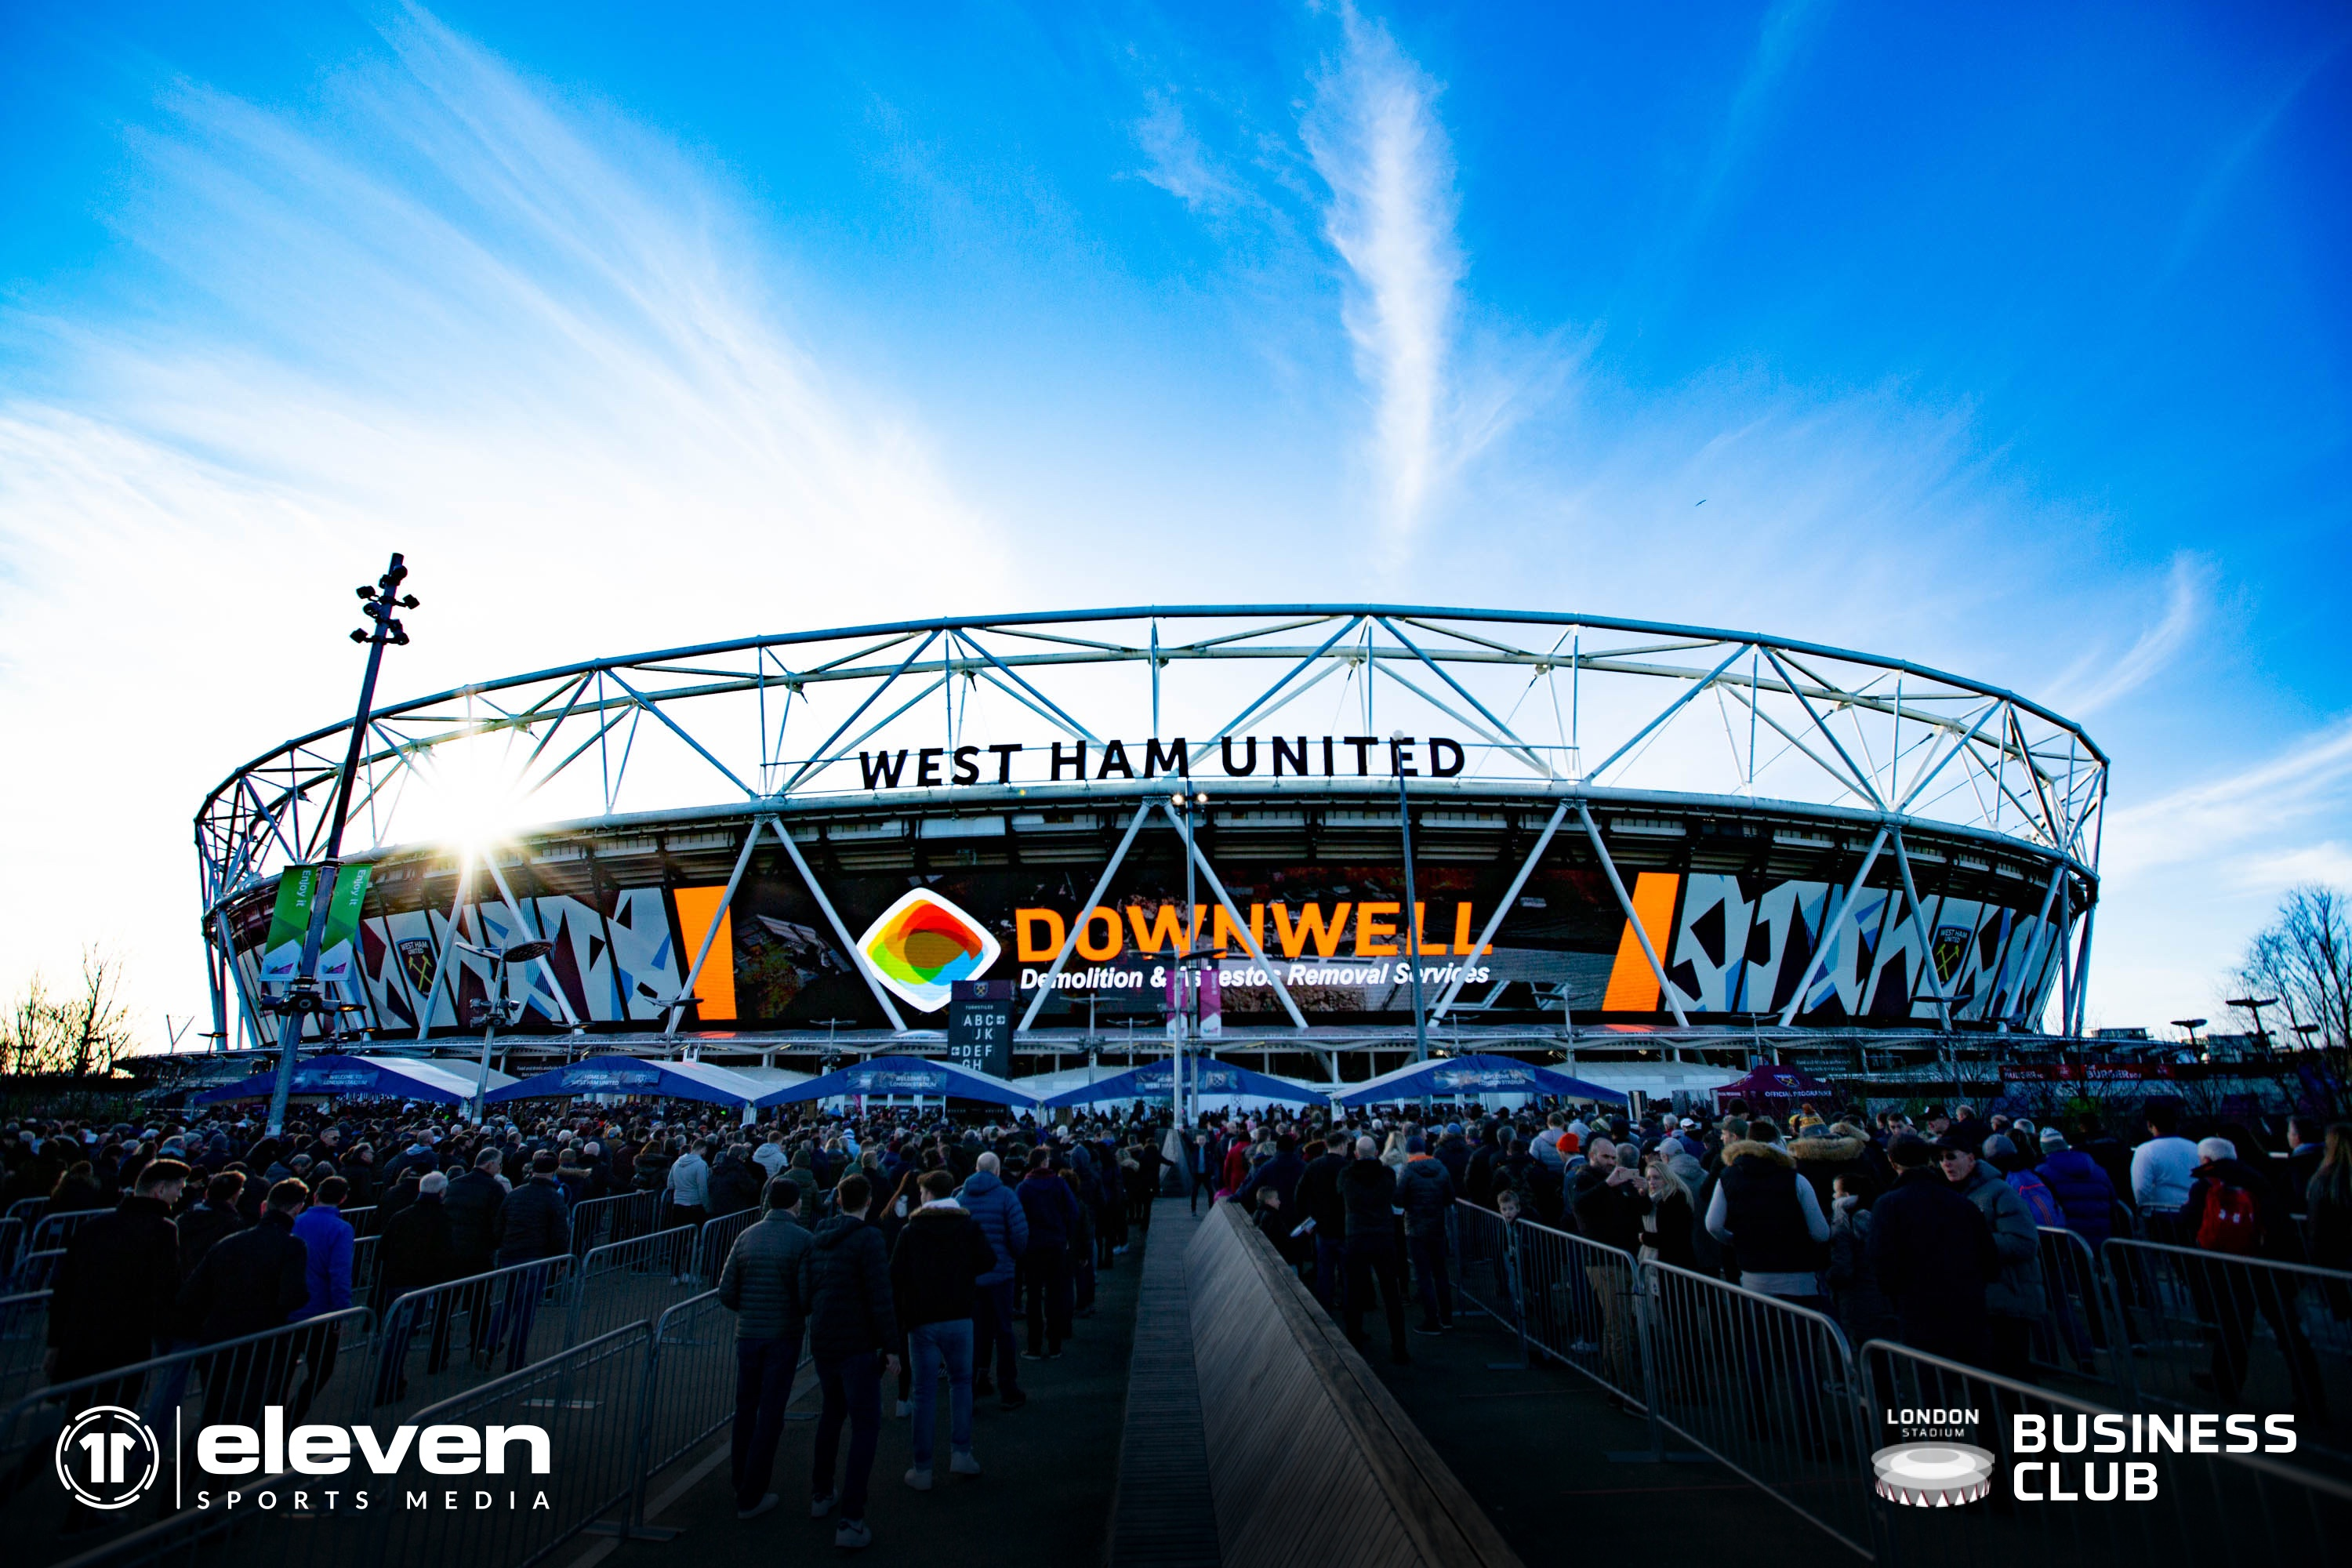 Downwell at the London Stadium